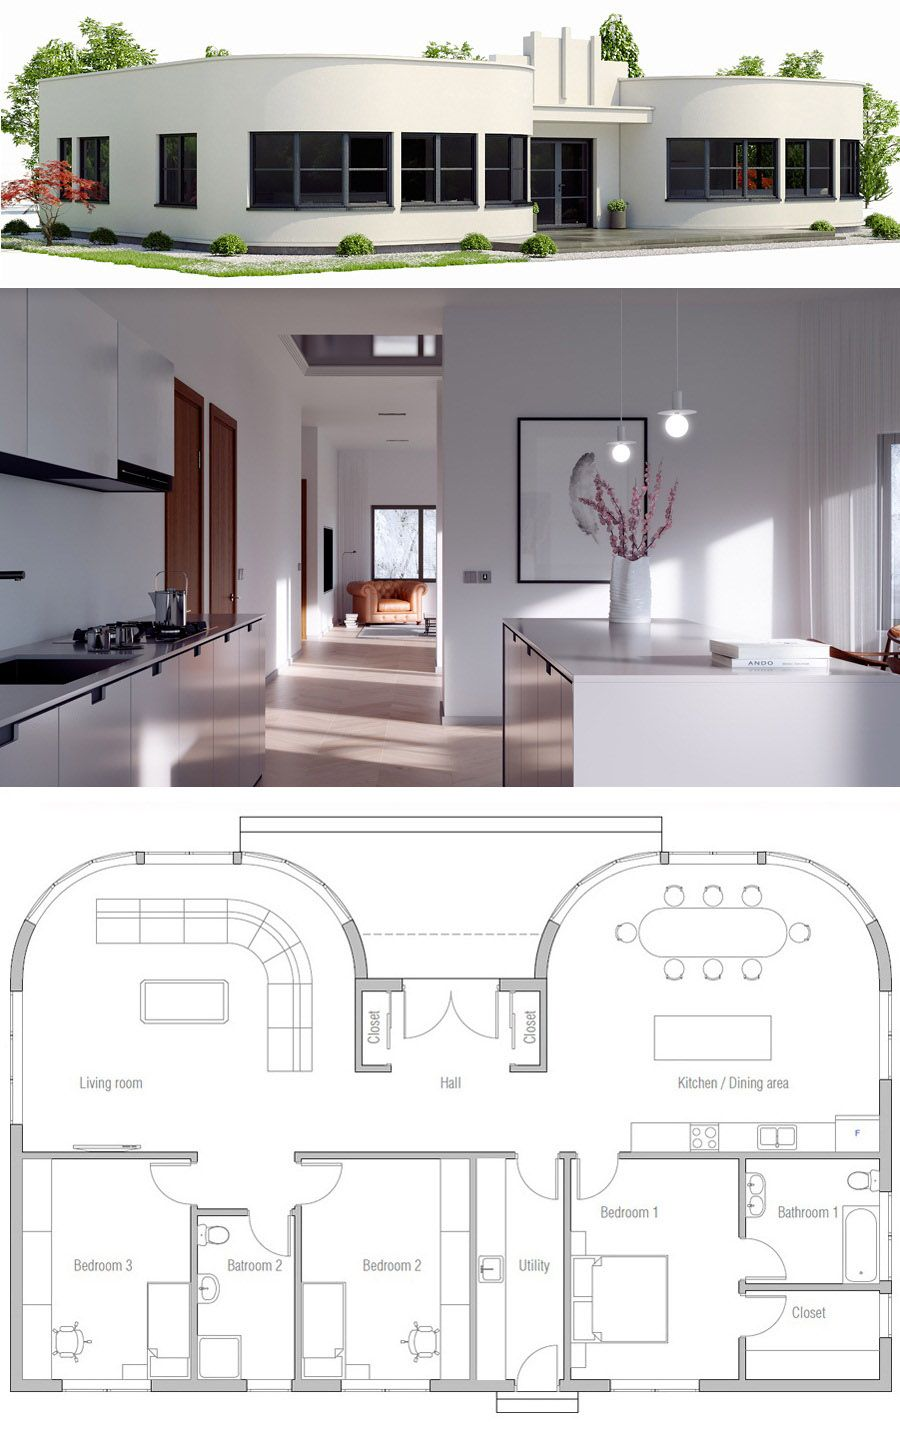 Architecture Home Plans Adhouseplans Homeplans Floorplans